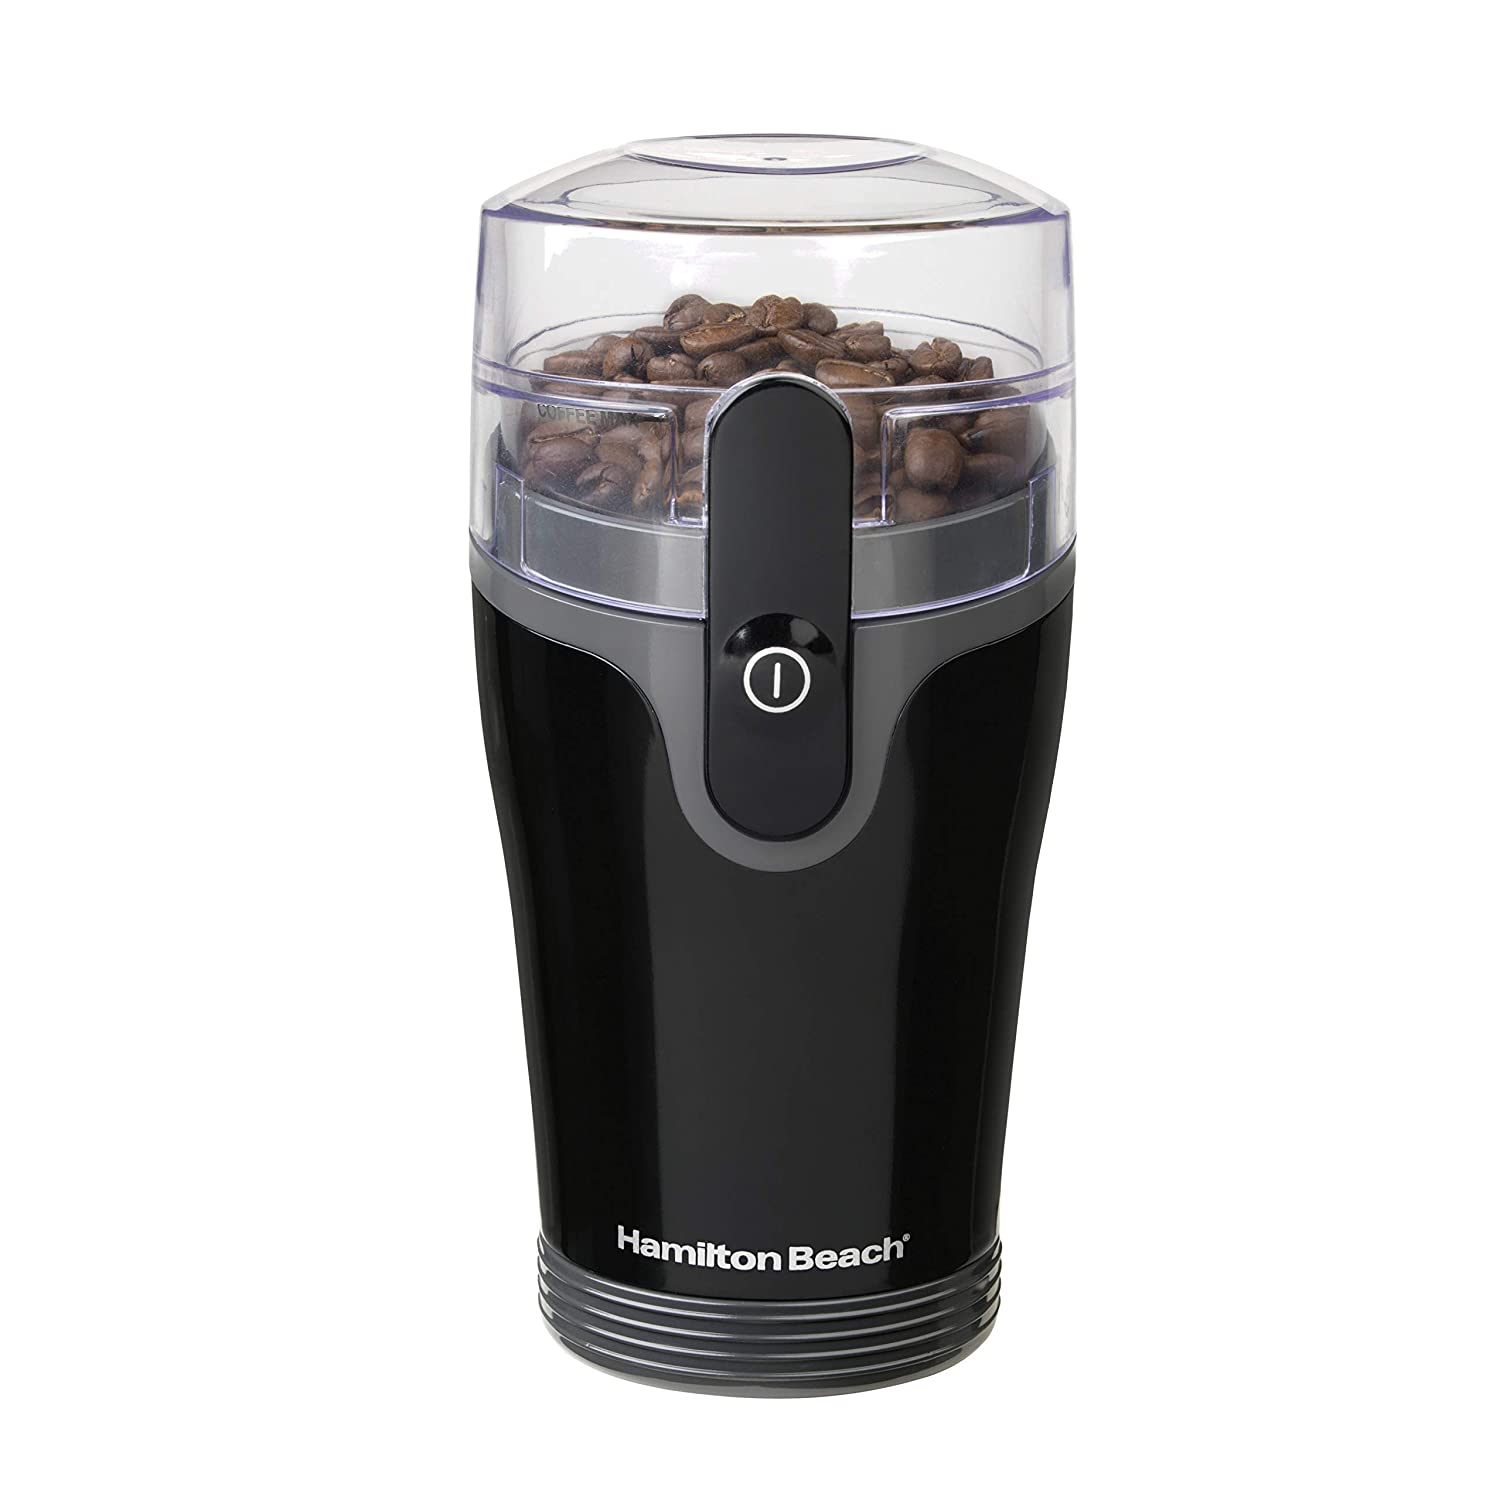 Hamilton Beach Fresh Grind Coffee Grinder (80335R), 1 Black